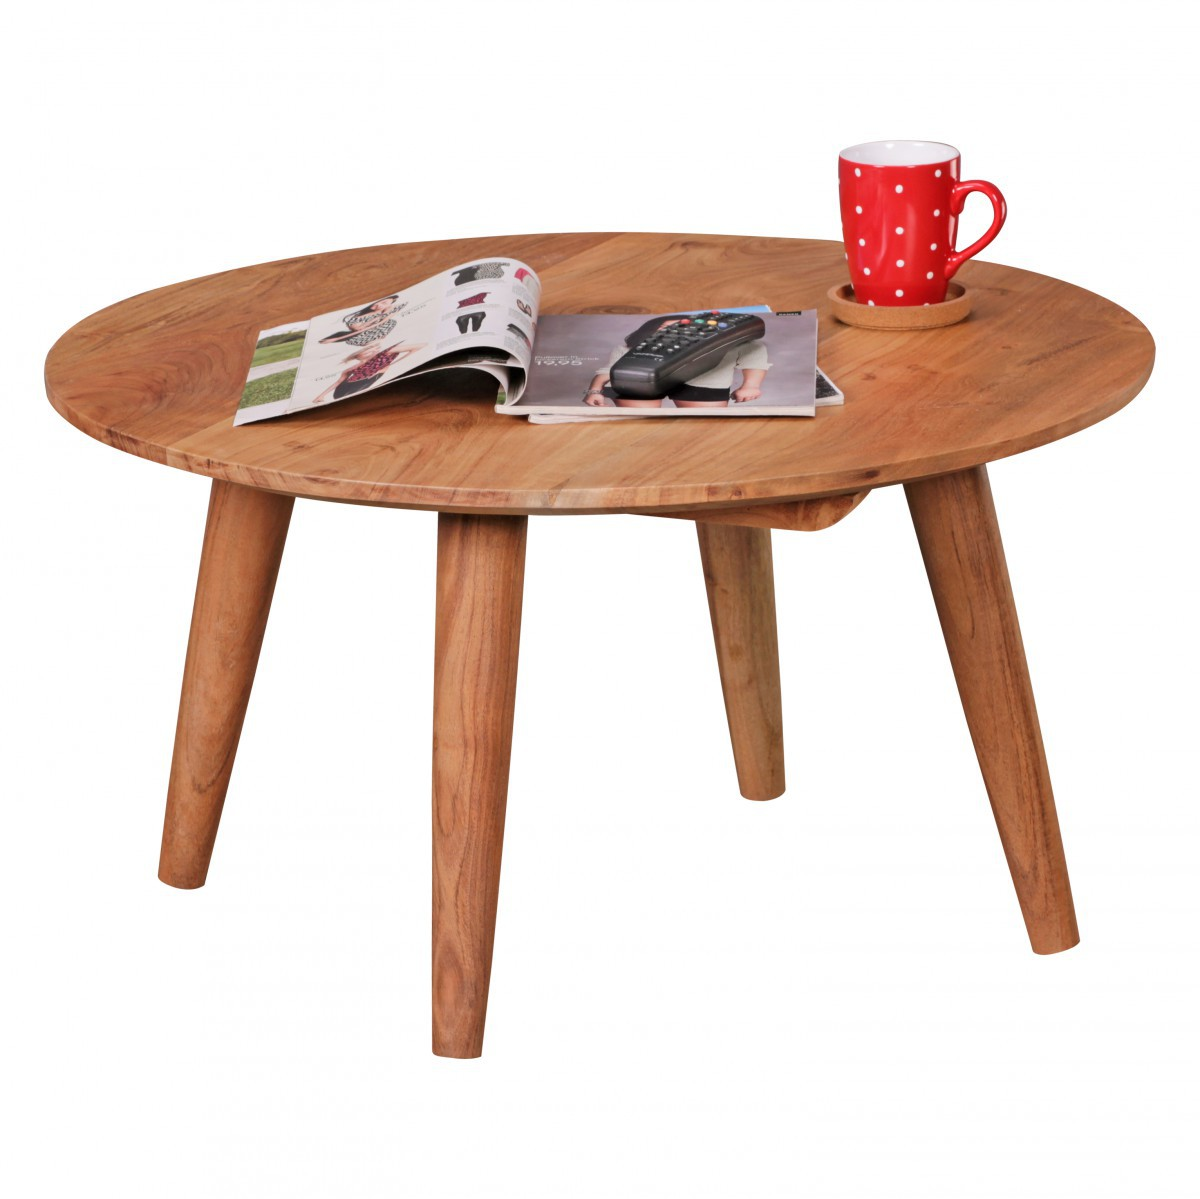 Finebuy table basse en bois massif acacia table basse - Table basse design ronde ...